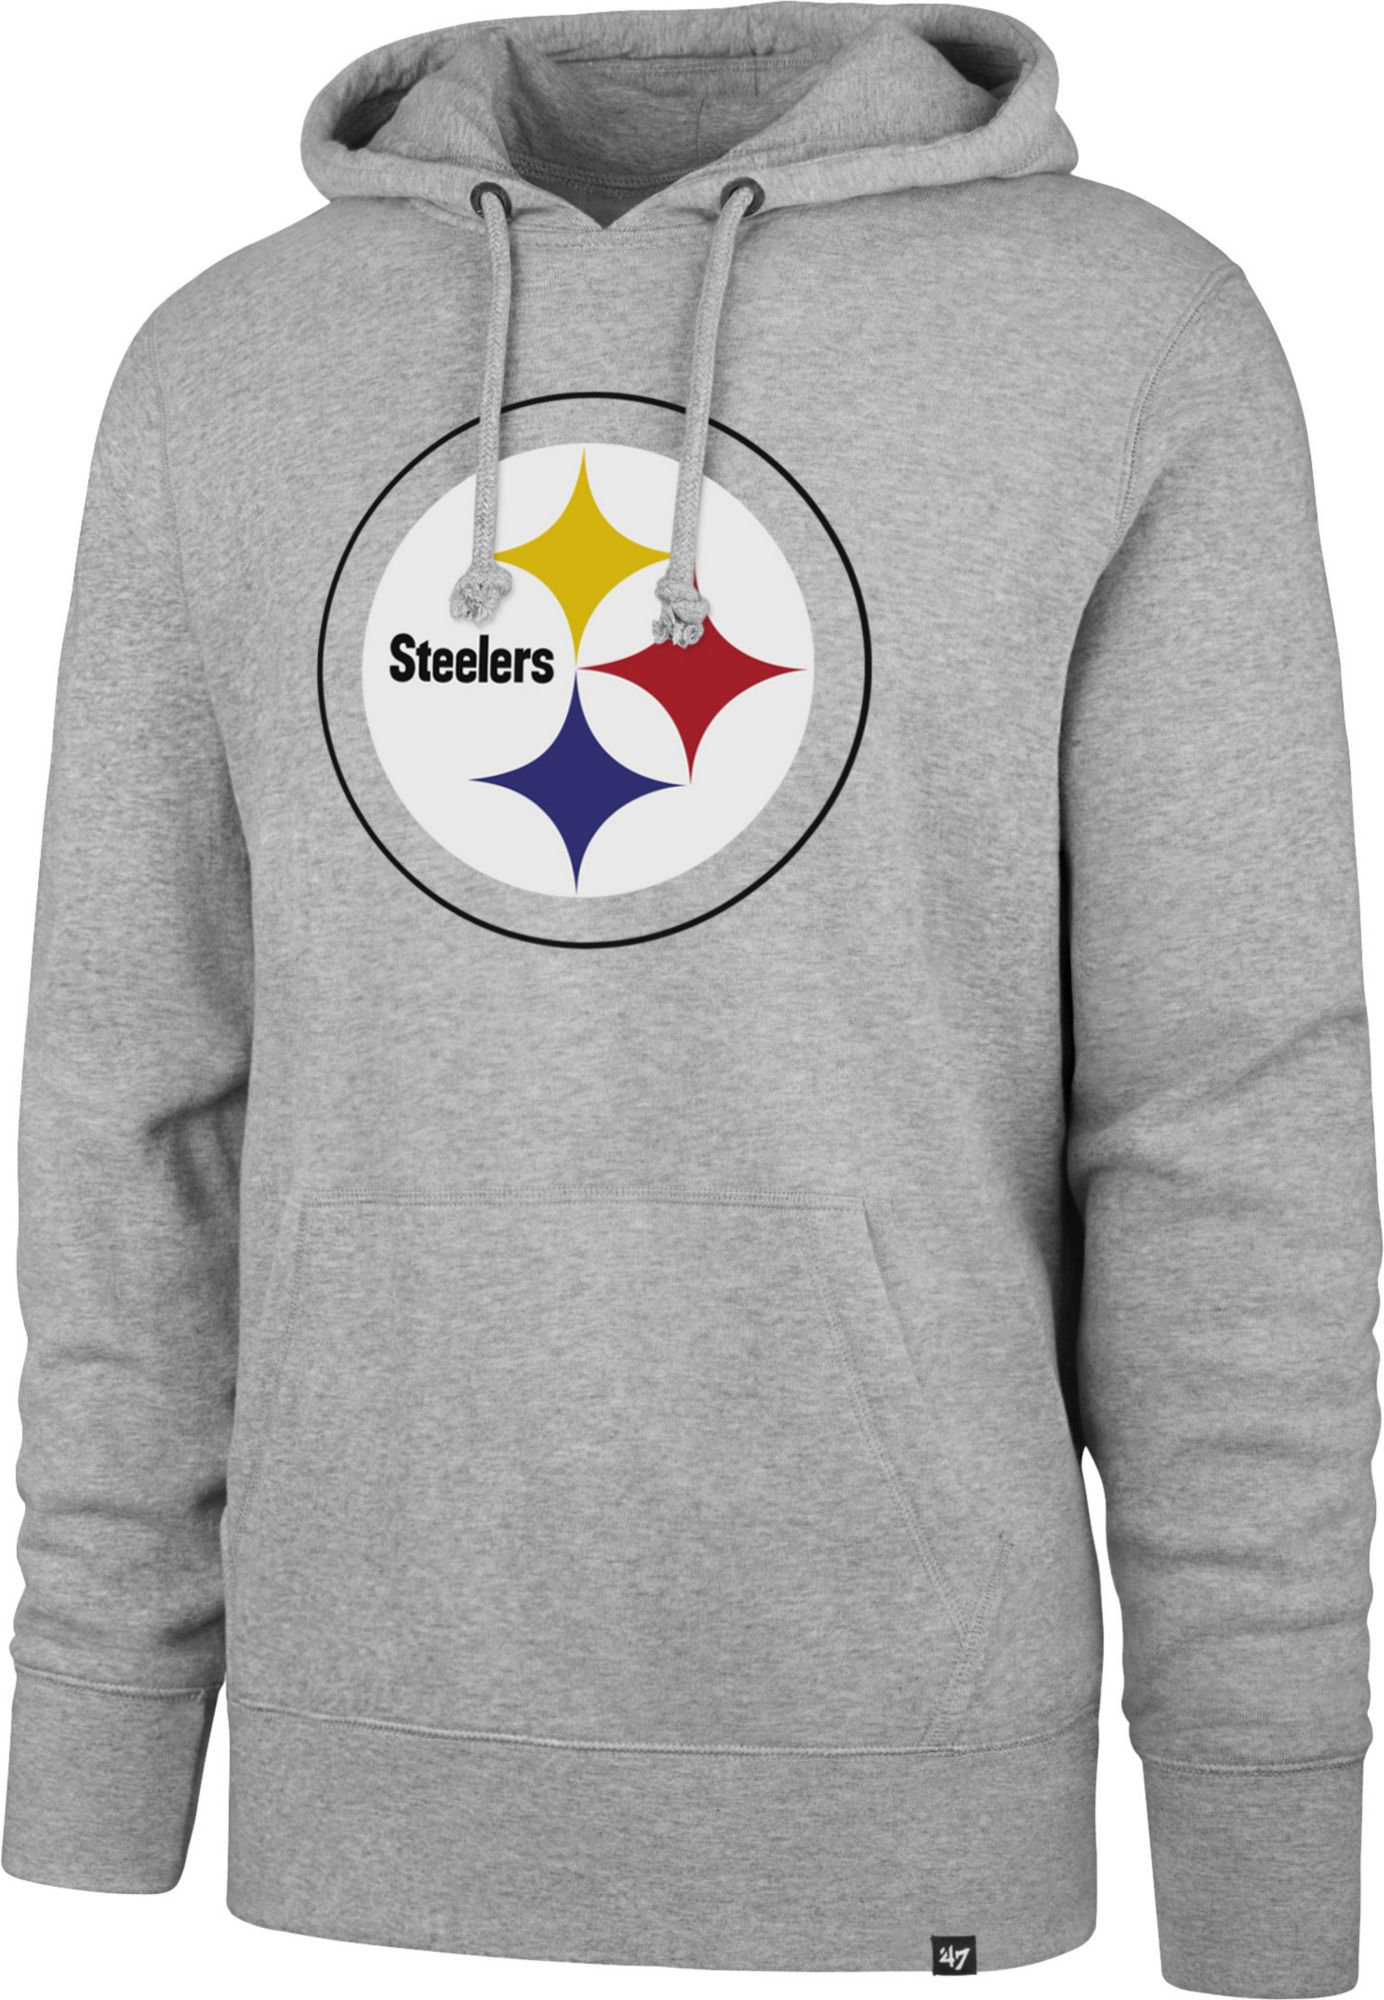 online retailer edb91 66cb2 pittsburgh steelers nike team issue classic grey hoodie